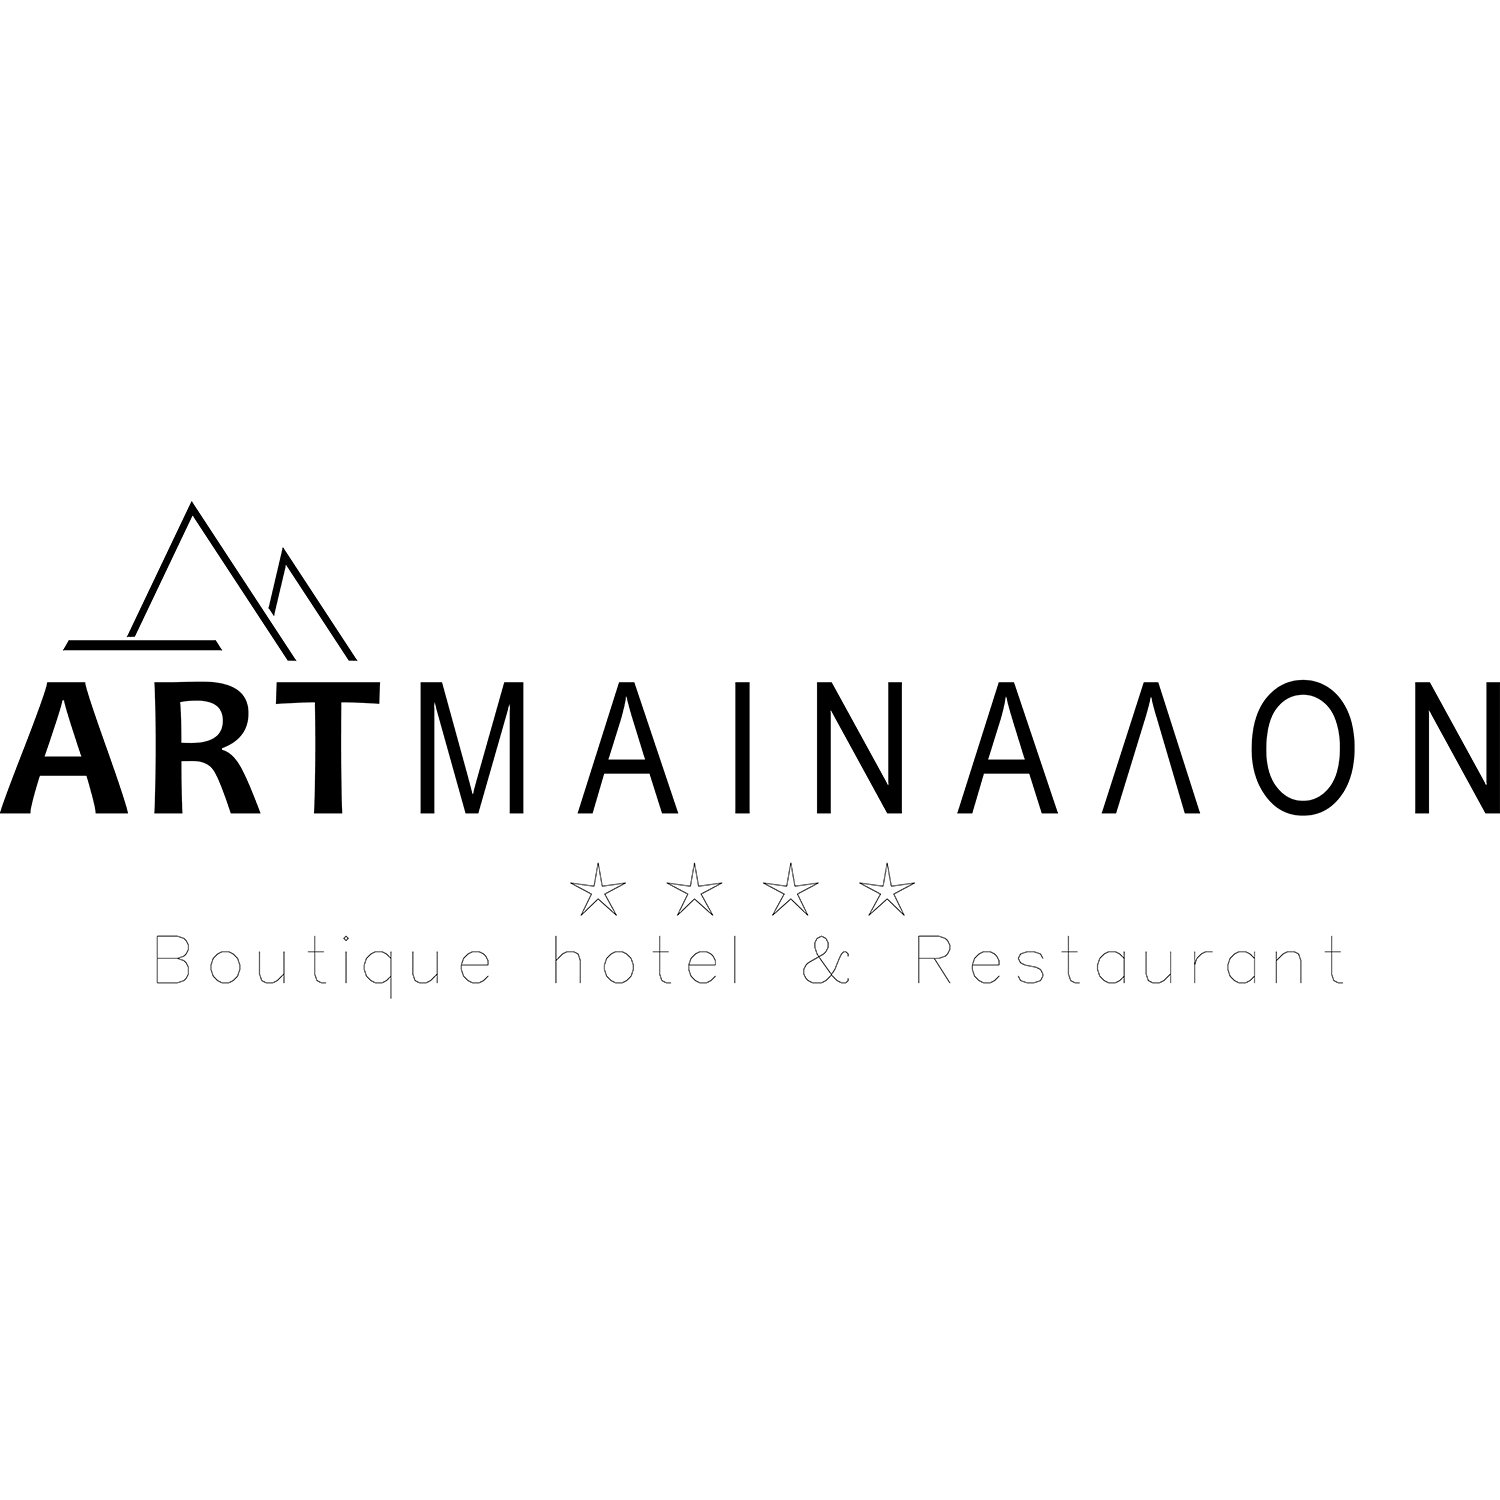 Art Mainalon hotel & restaurant